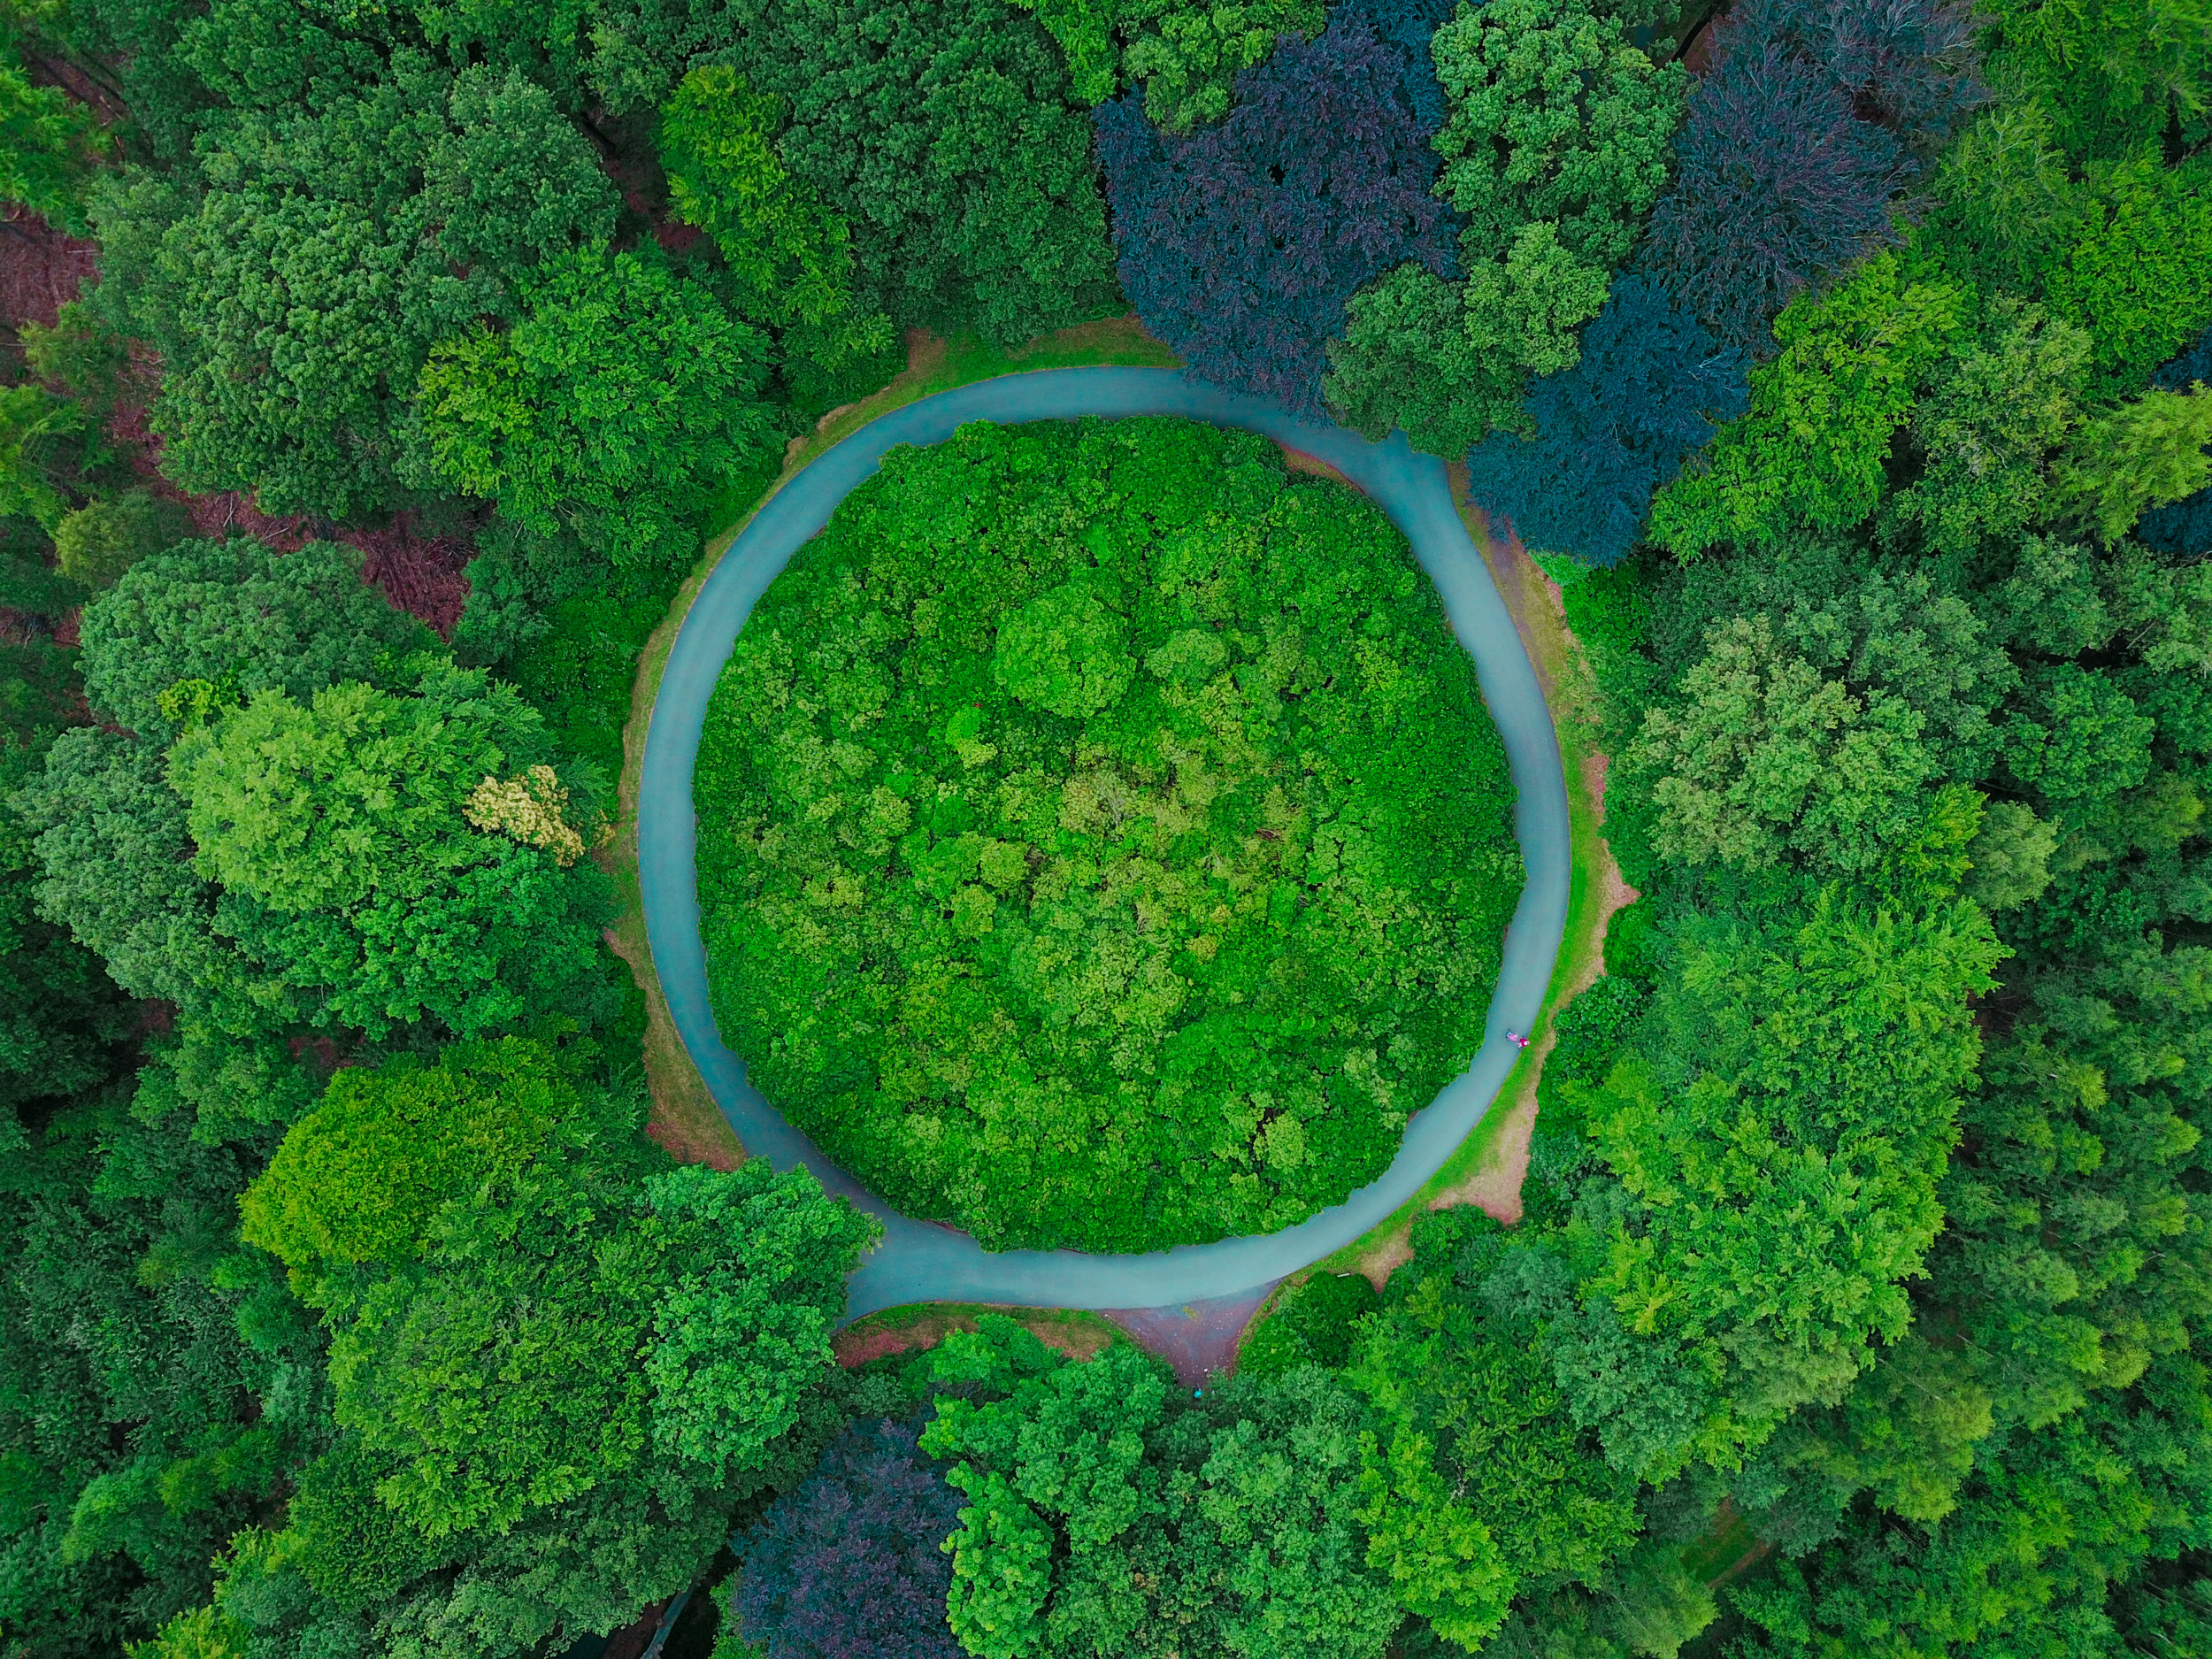 Circular economy could bring 70 percent cut in carbon emissions by 2030 -